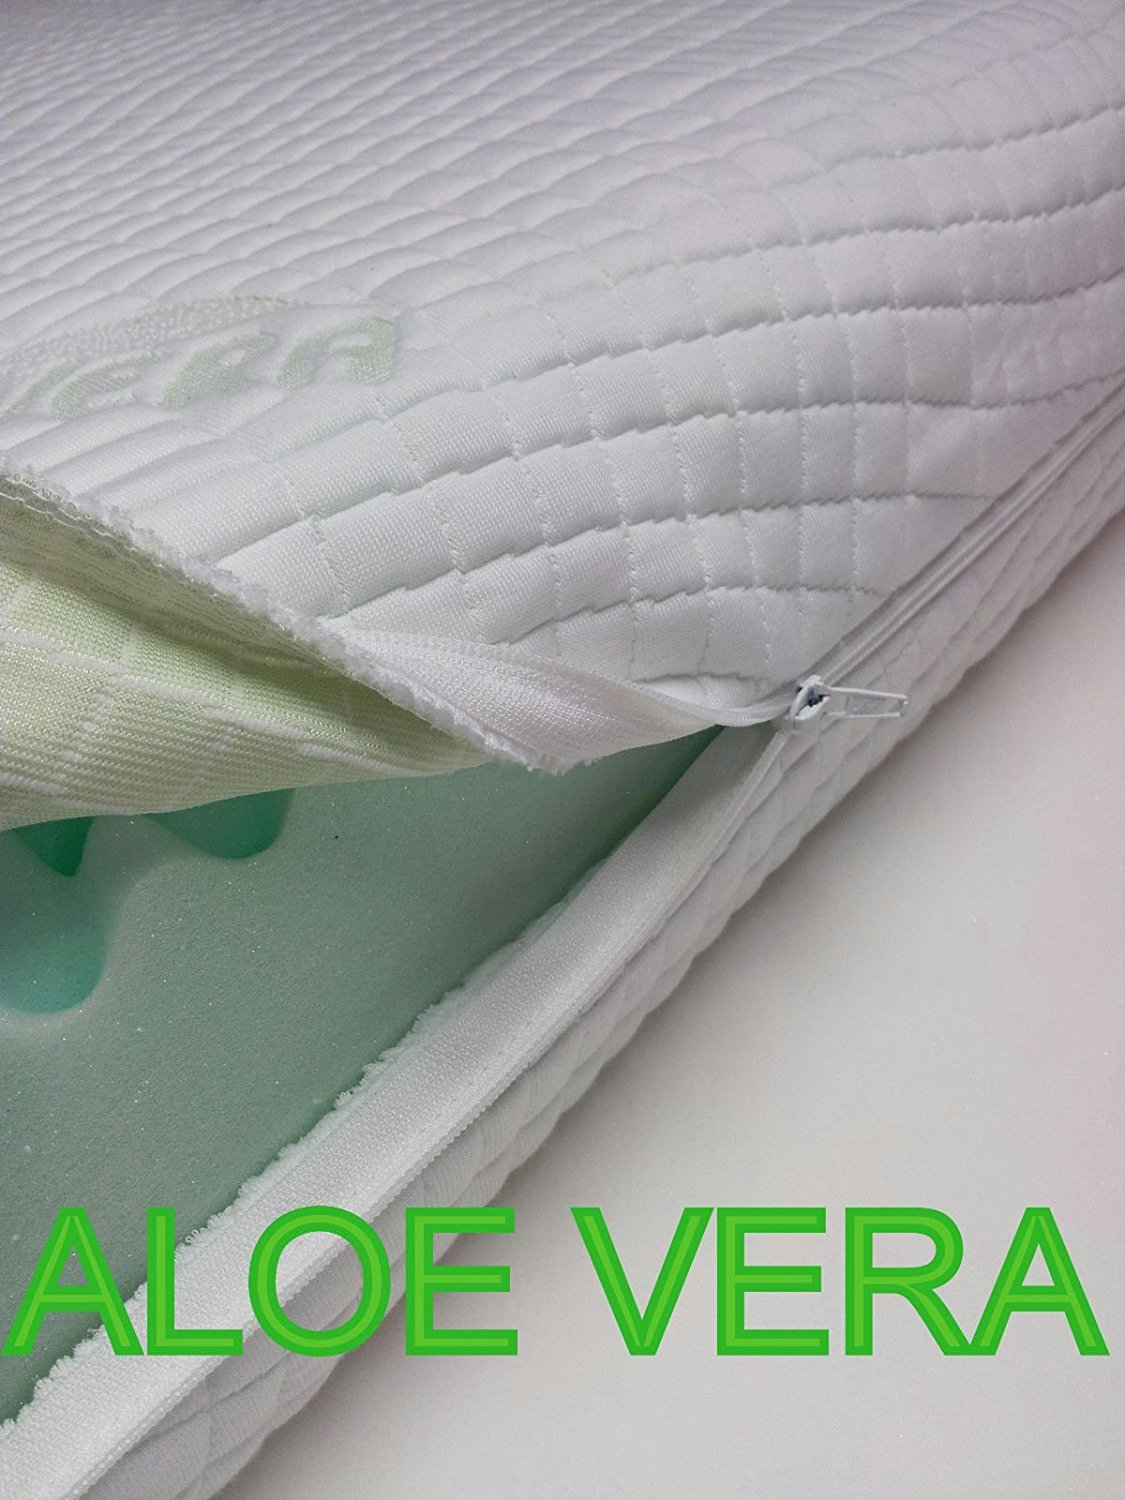 'Single Bed Mattress Cover 80 x 190, Variable Height with 4 Zipper Sides, Removable & Washable, Aloe Vera, Non-Allergenic, Breathable Replacement Orthopaedic Hypoallergenic and Dust Mite, Machine Washable,. The Case That Covers The Must Be Easily Remo